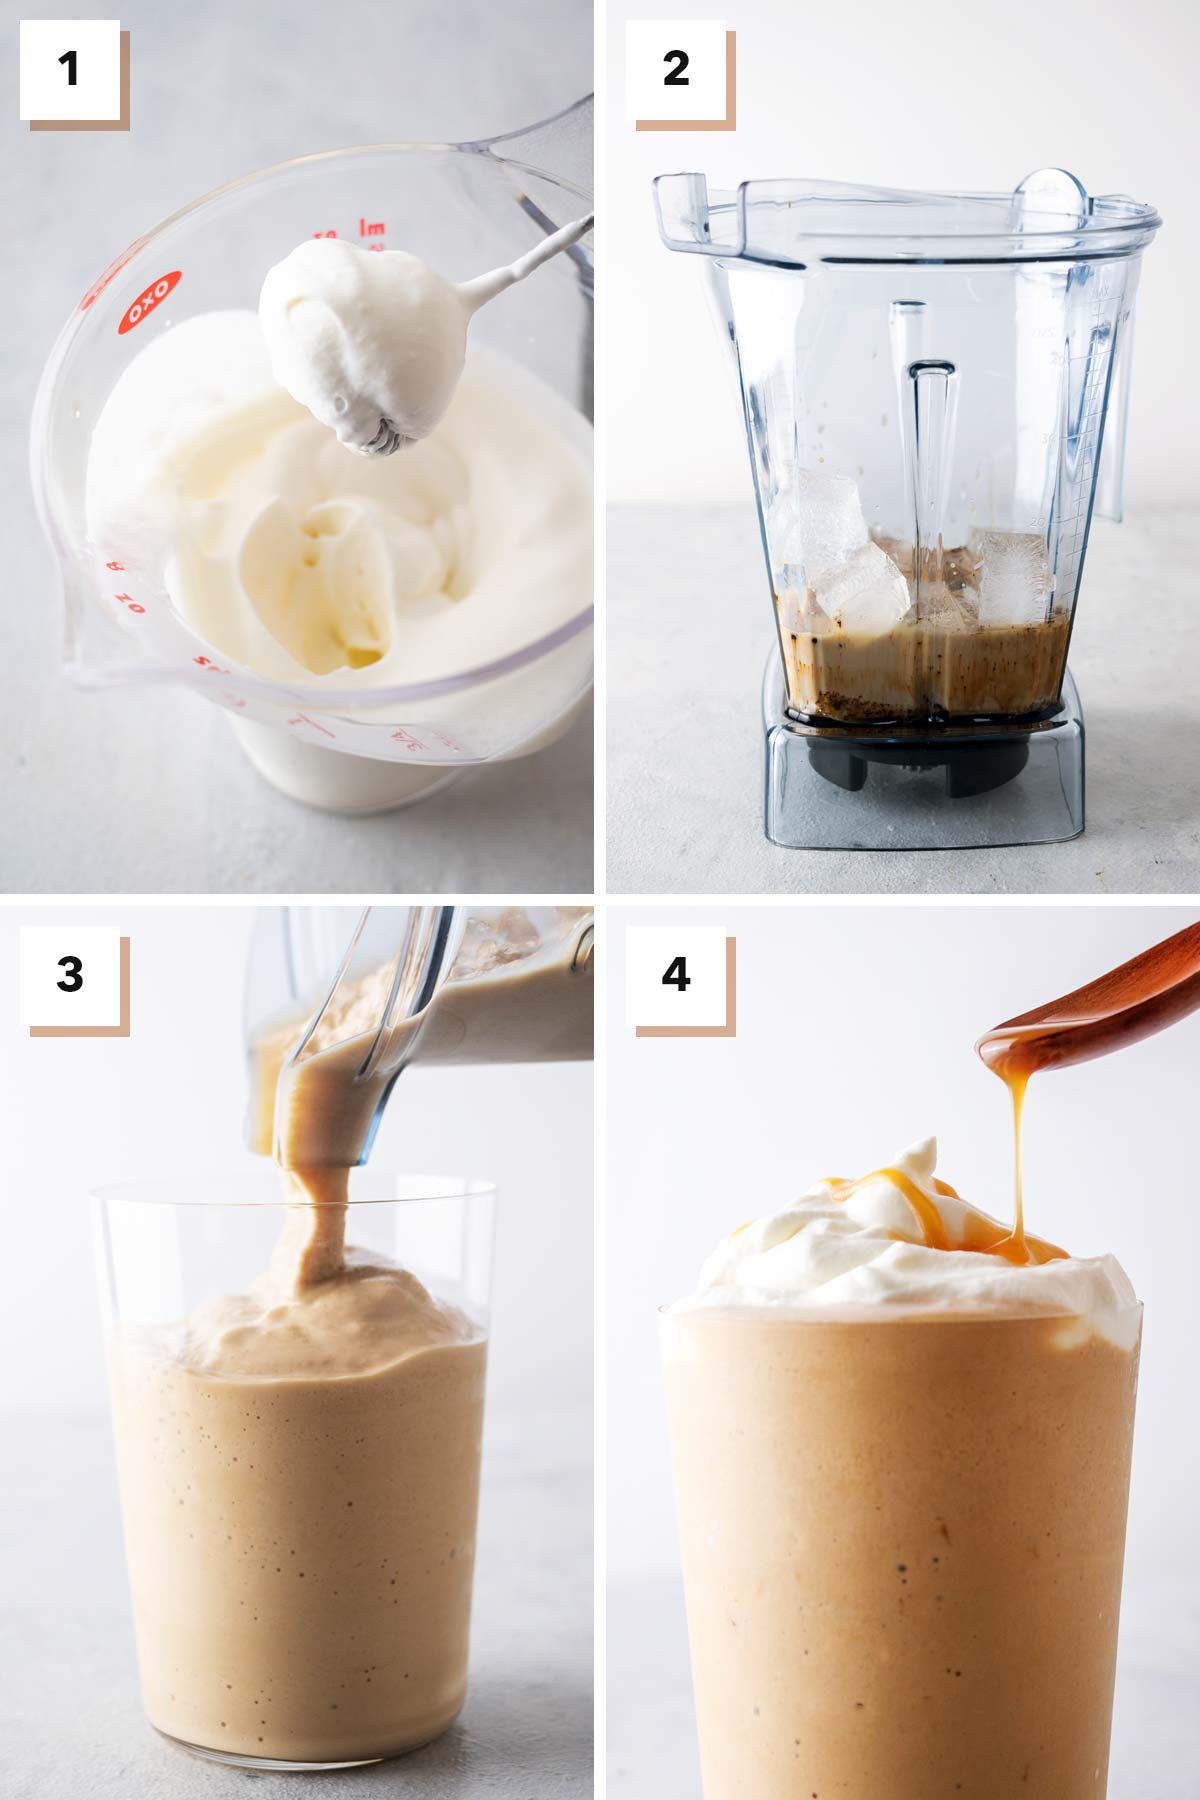 Four photo collage showing steps to make a Caramel Frappuccino.